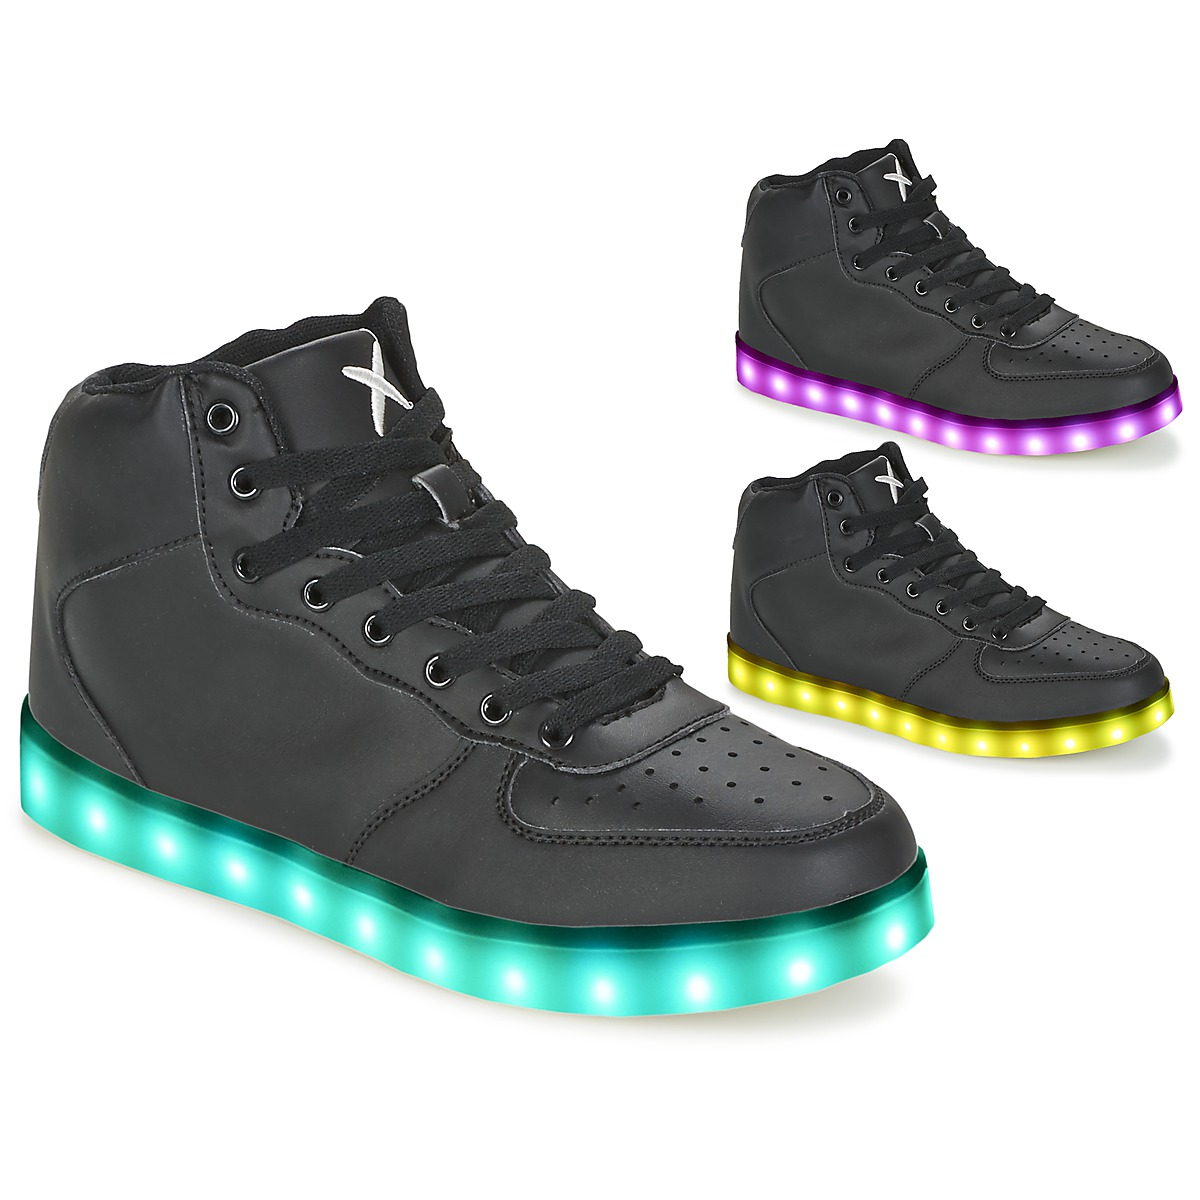 Sneakers Wize   Ope  THE HI TOP